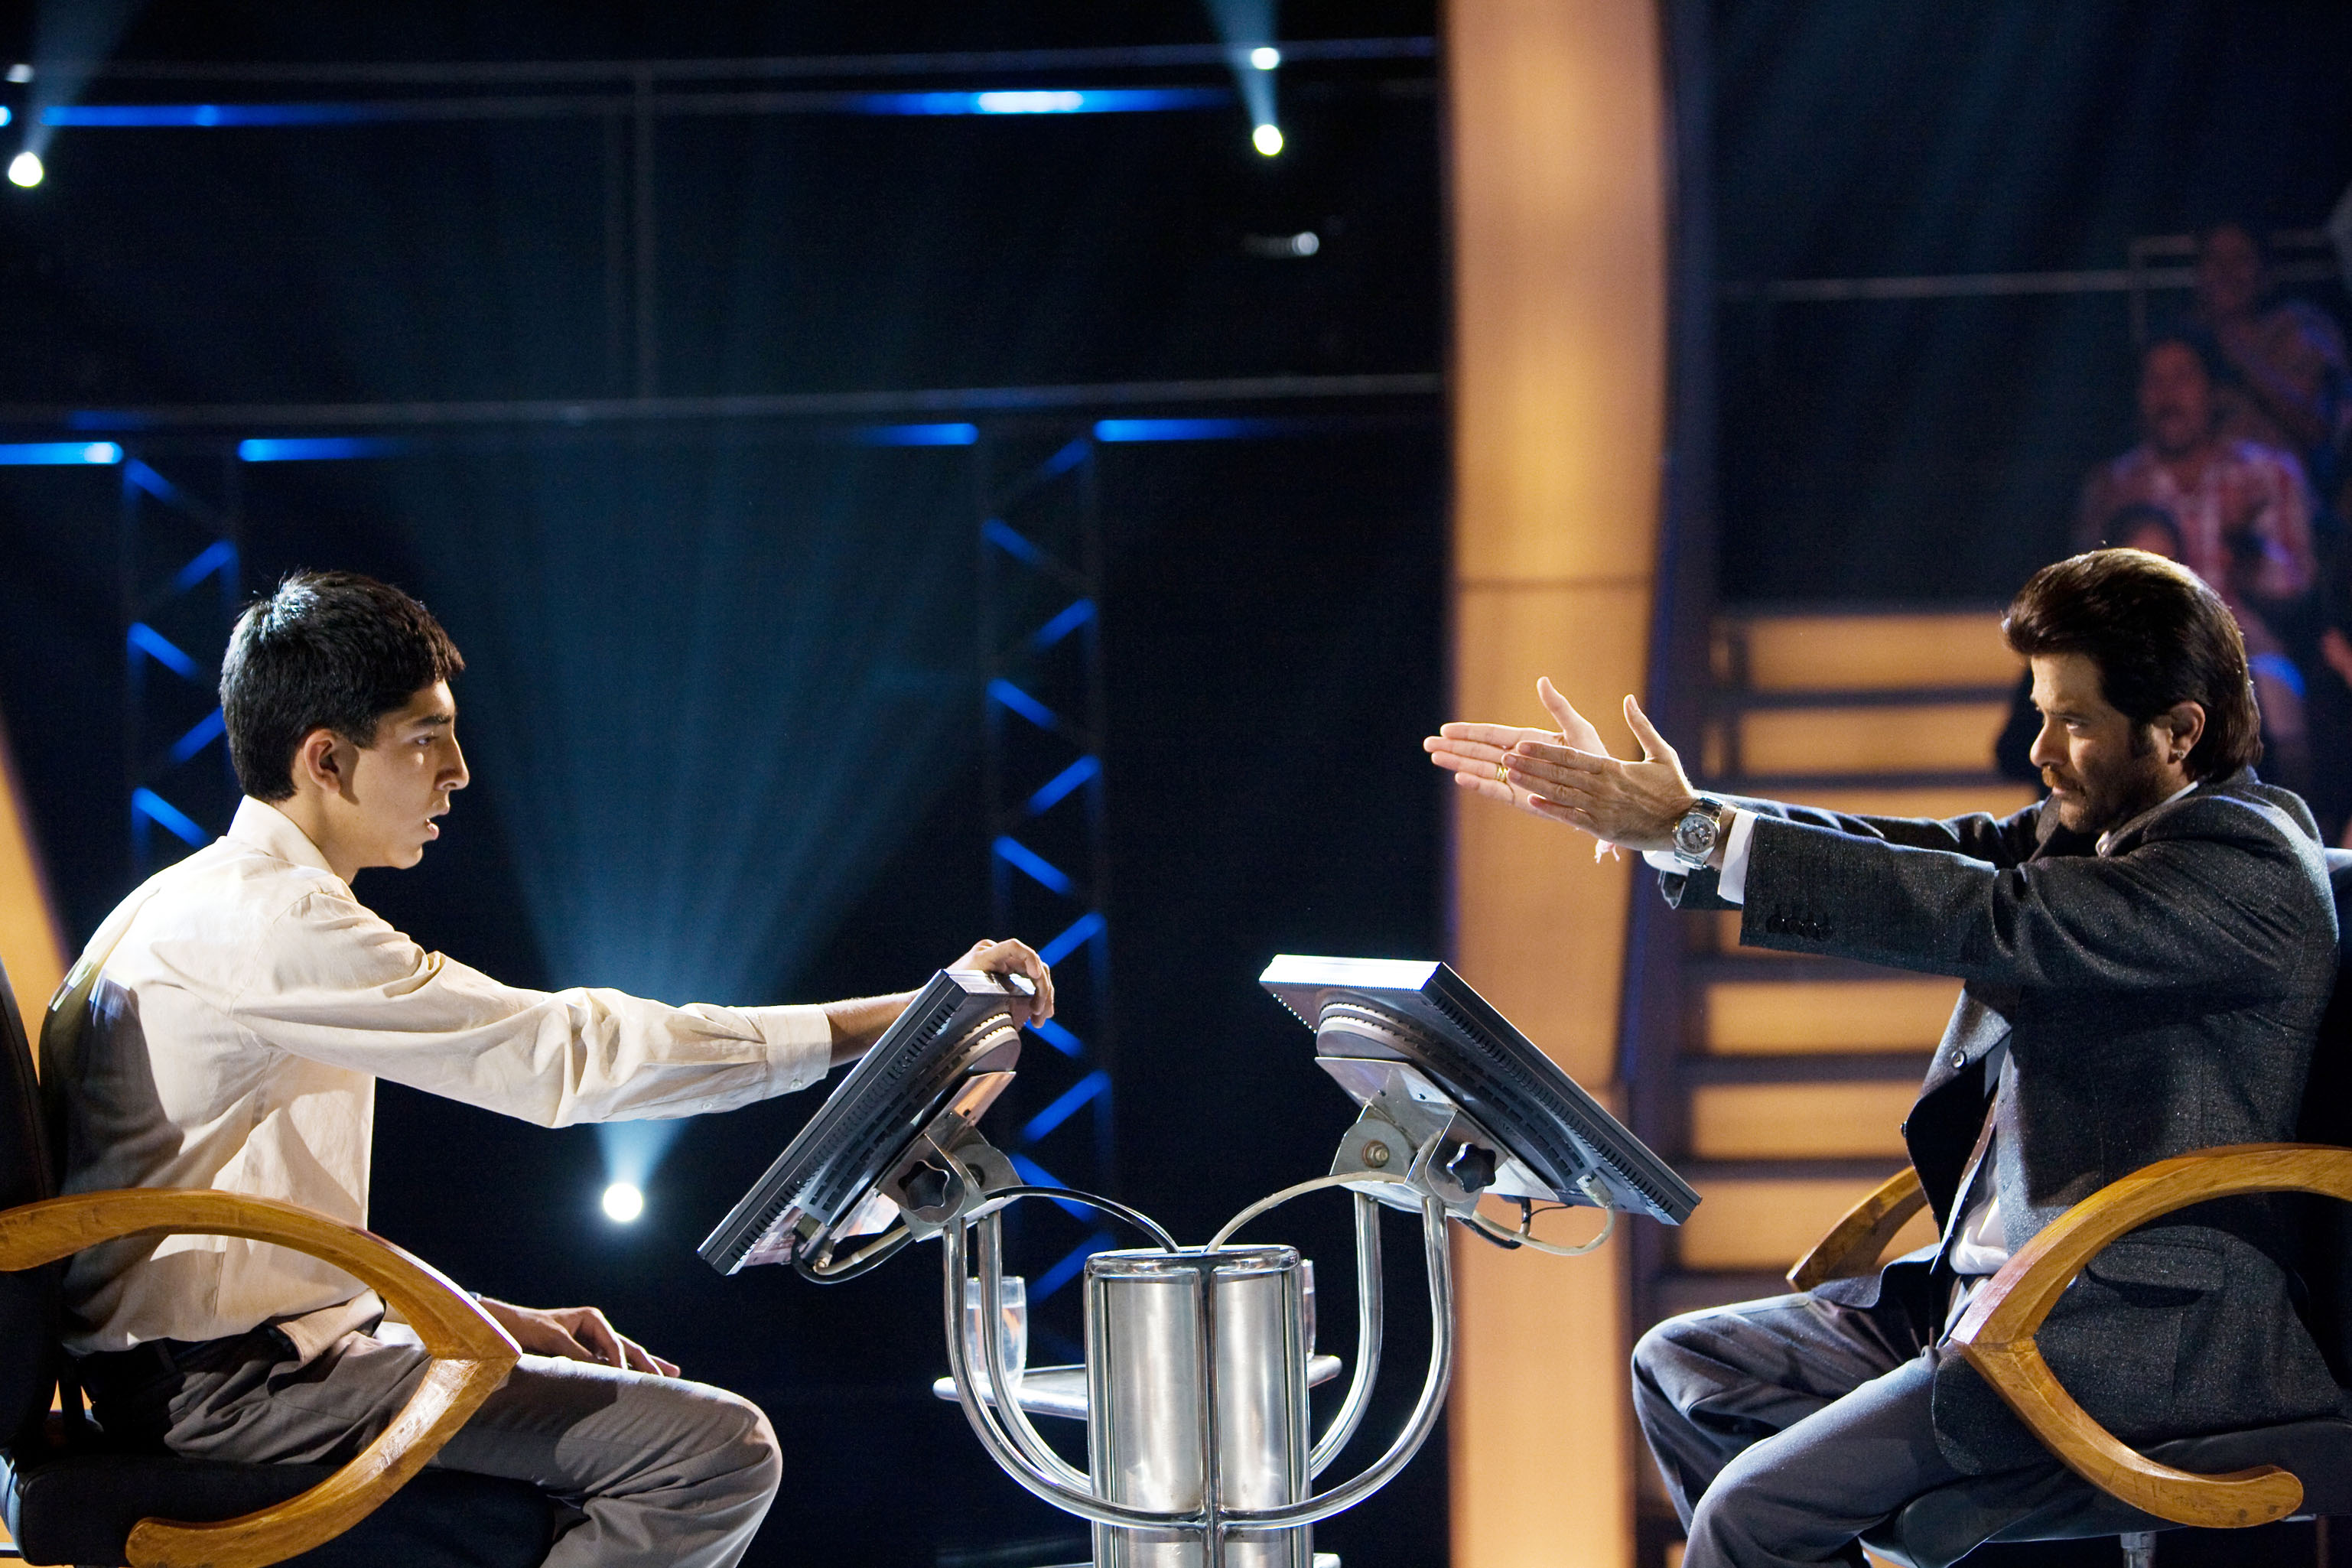 """Dev Patel, left, does his best to field questions from Anil Kapoor in """"Slumdog Millionaire,"""" the 2008 winner of Oscar's best picture award."""